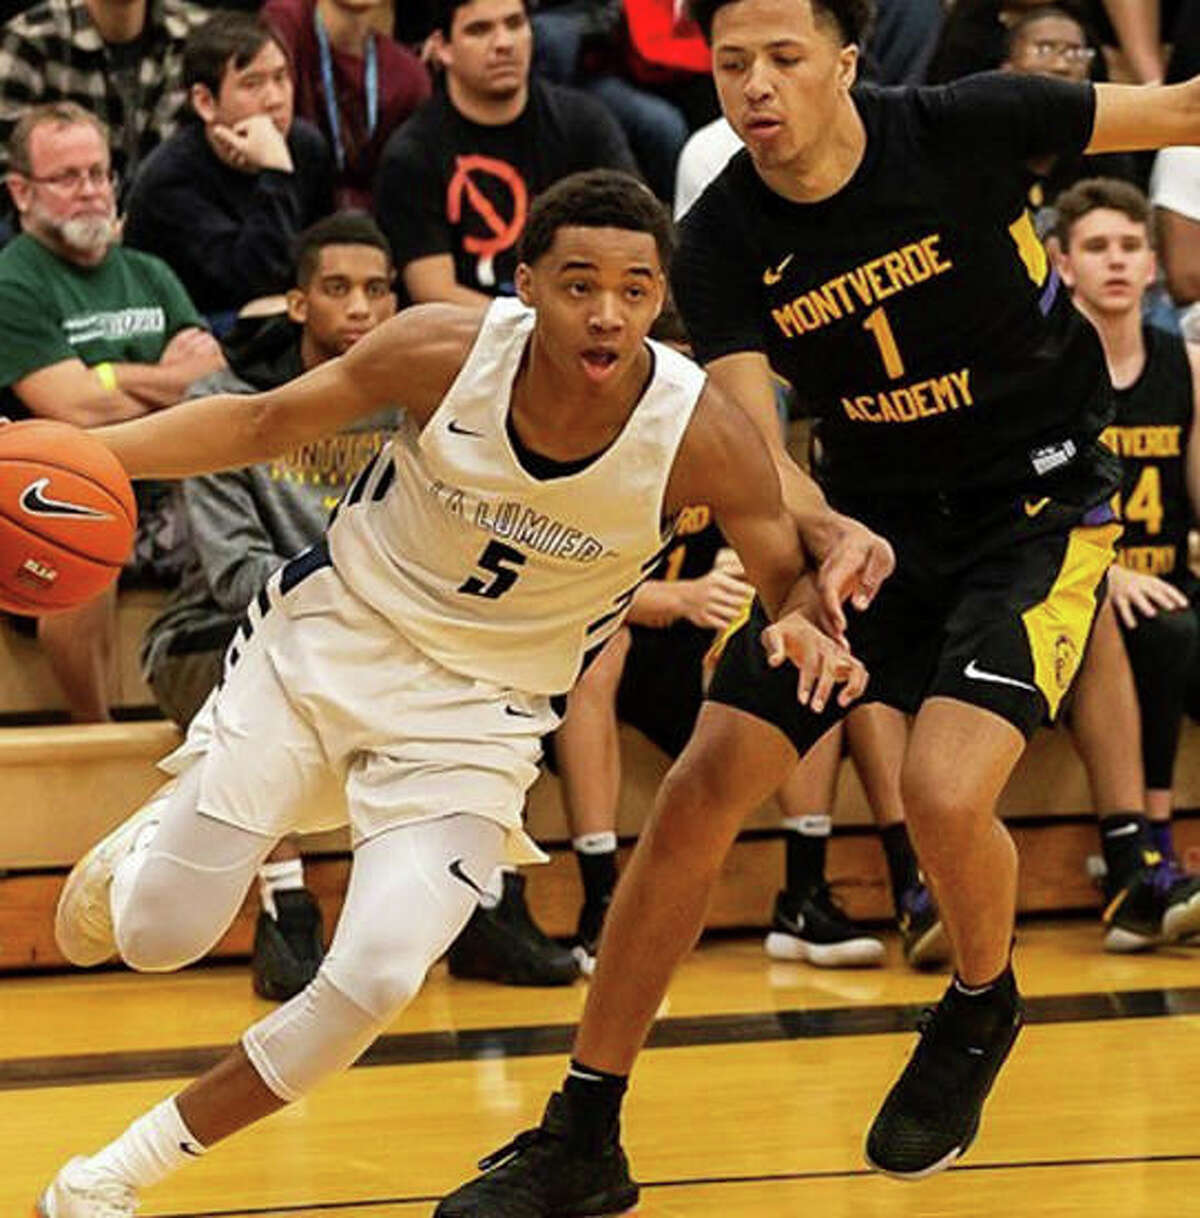 Desmond Polk is the newest recruit for the SIUE men's basketball team.